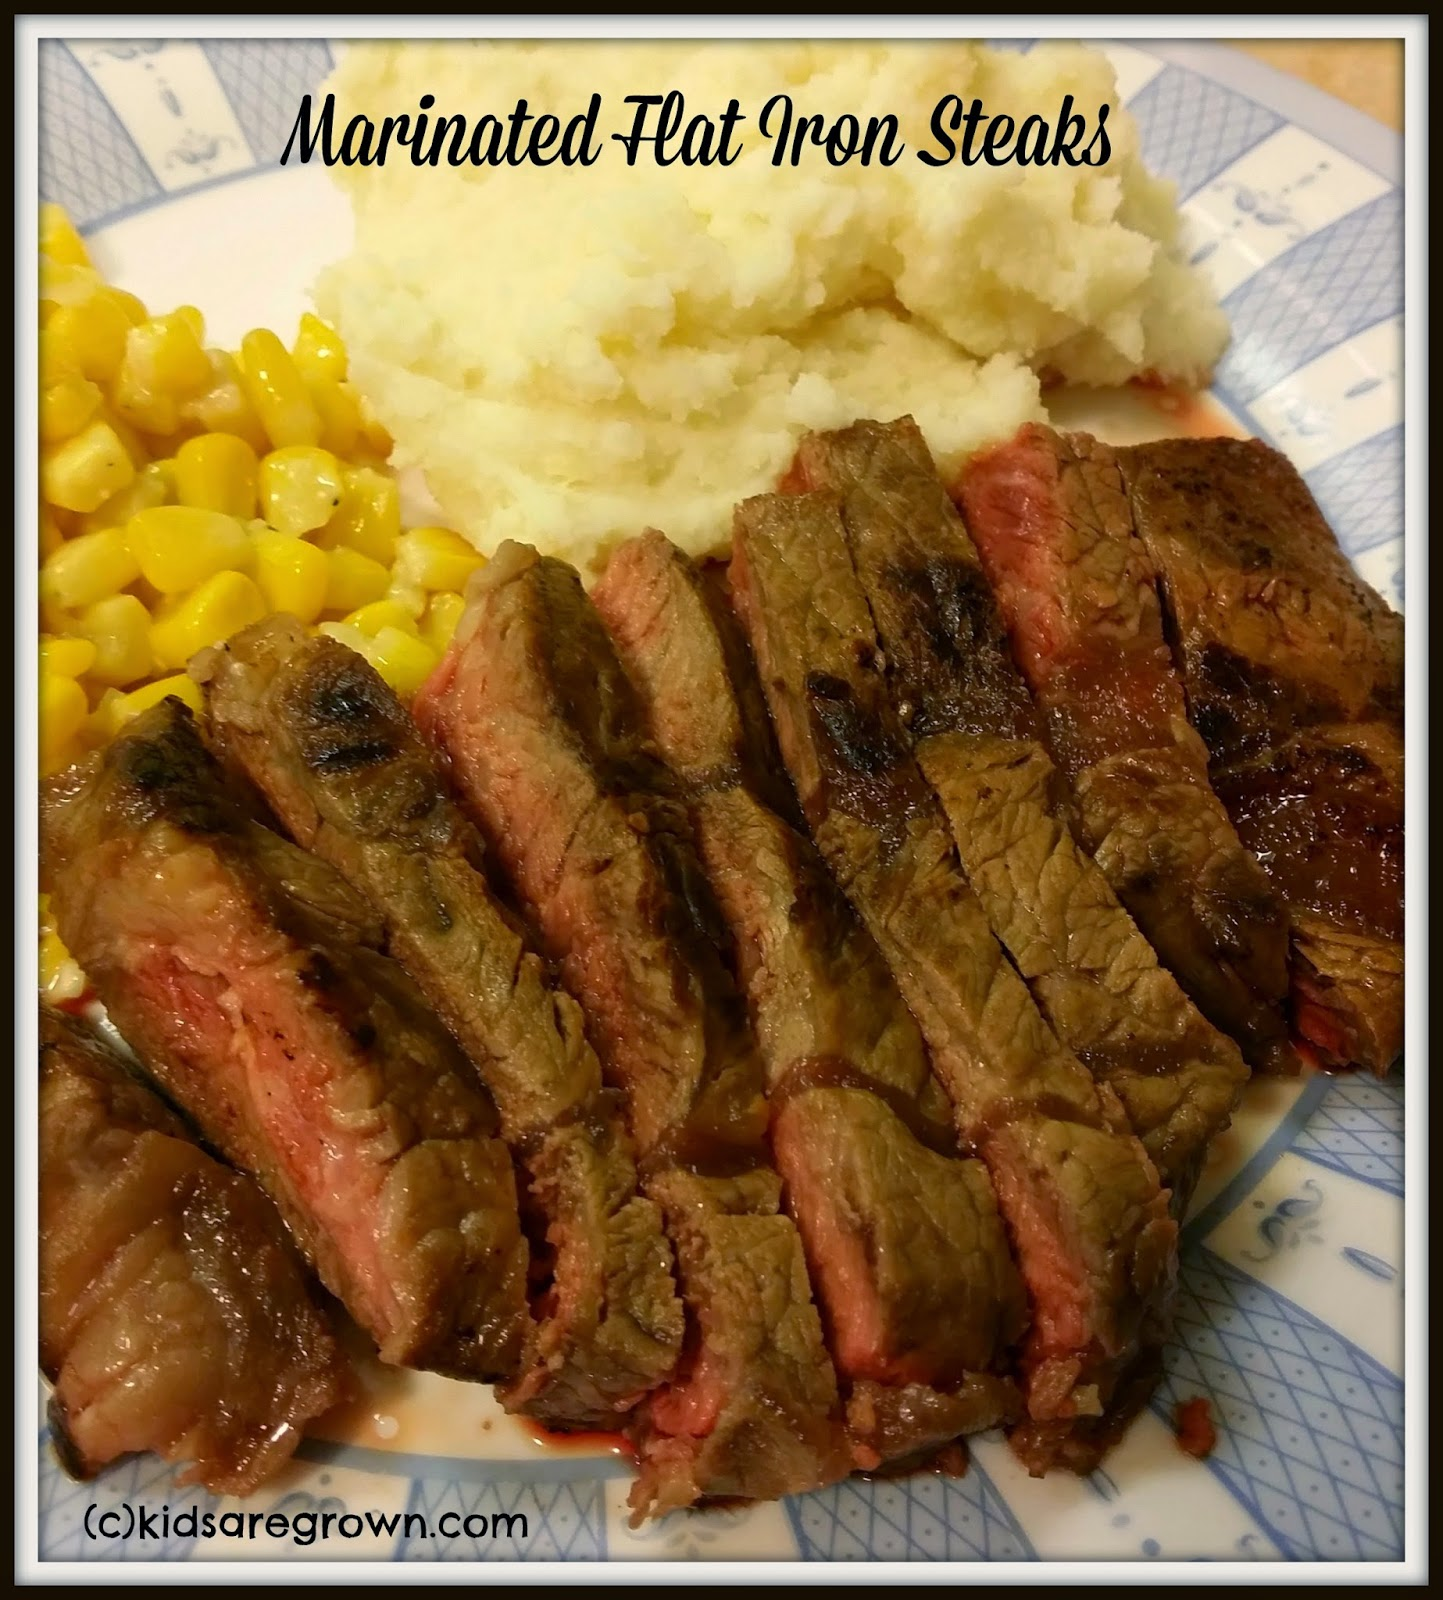 Marinated-Flat-Iron-Steaks